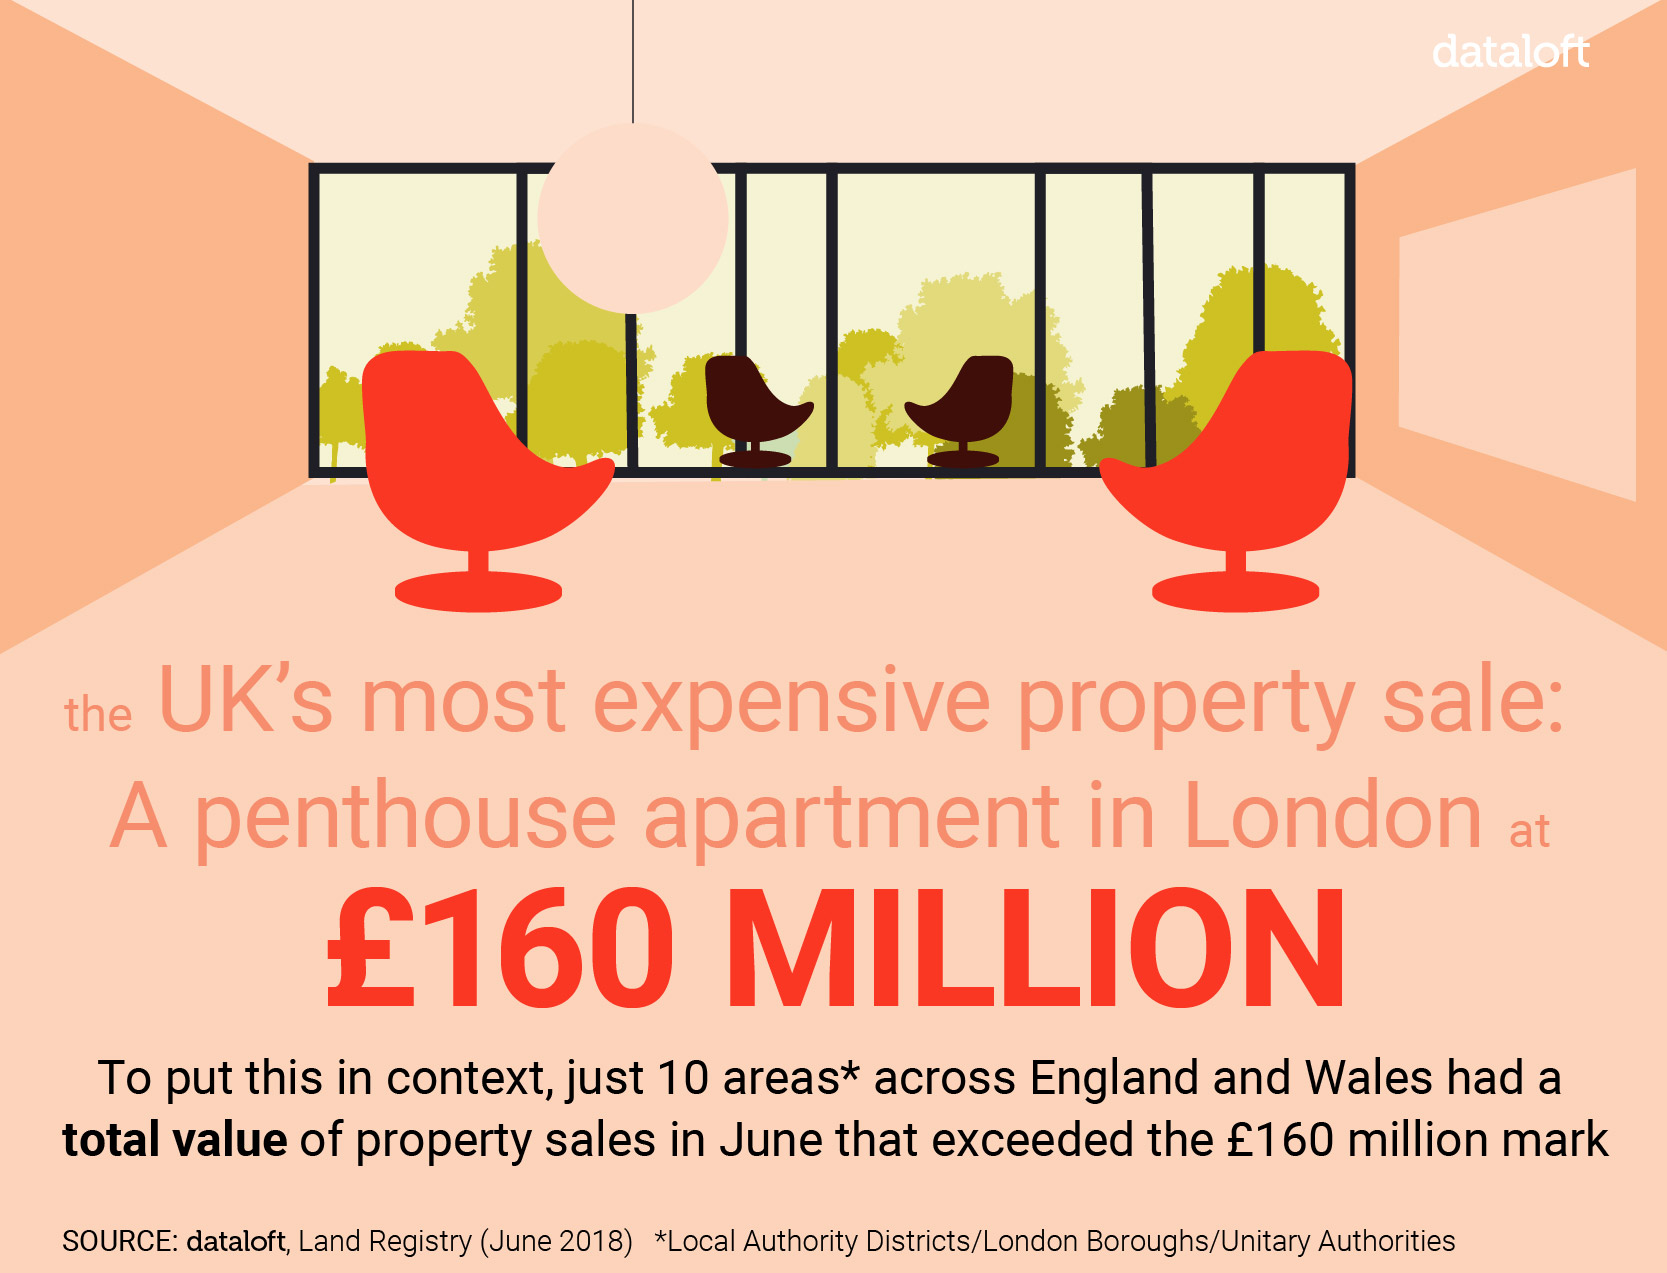 The UK's most expensive property sale.